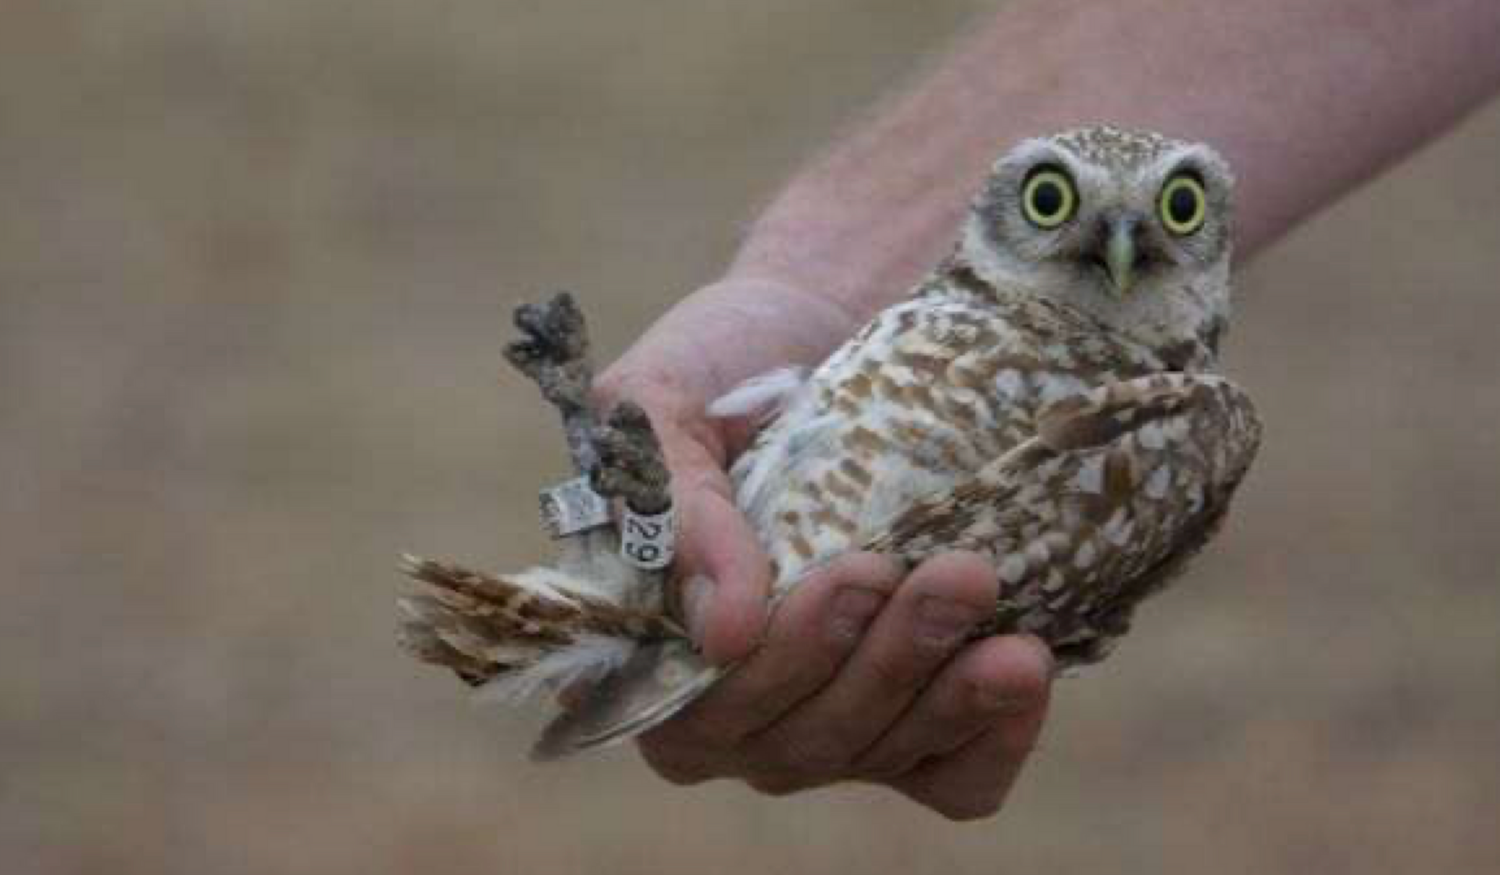 Young burrowing owl looks surprised as its handled for inspection